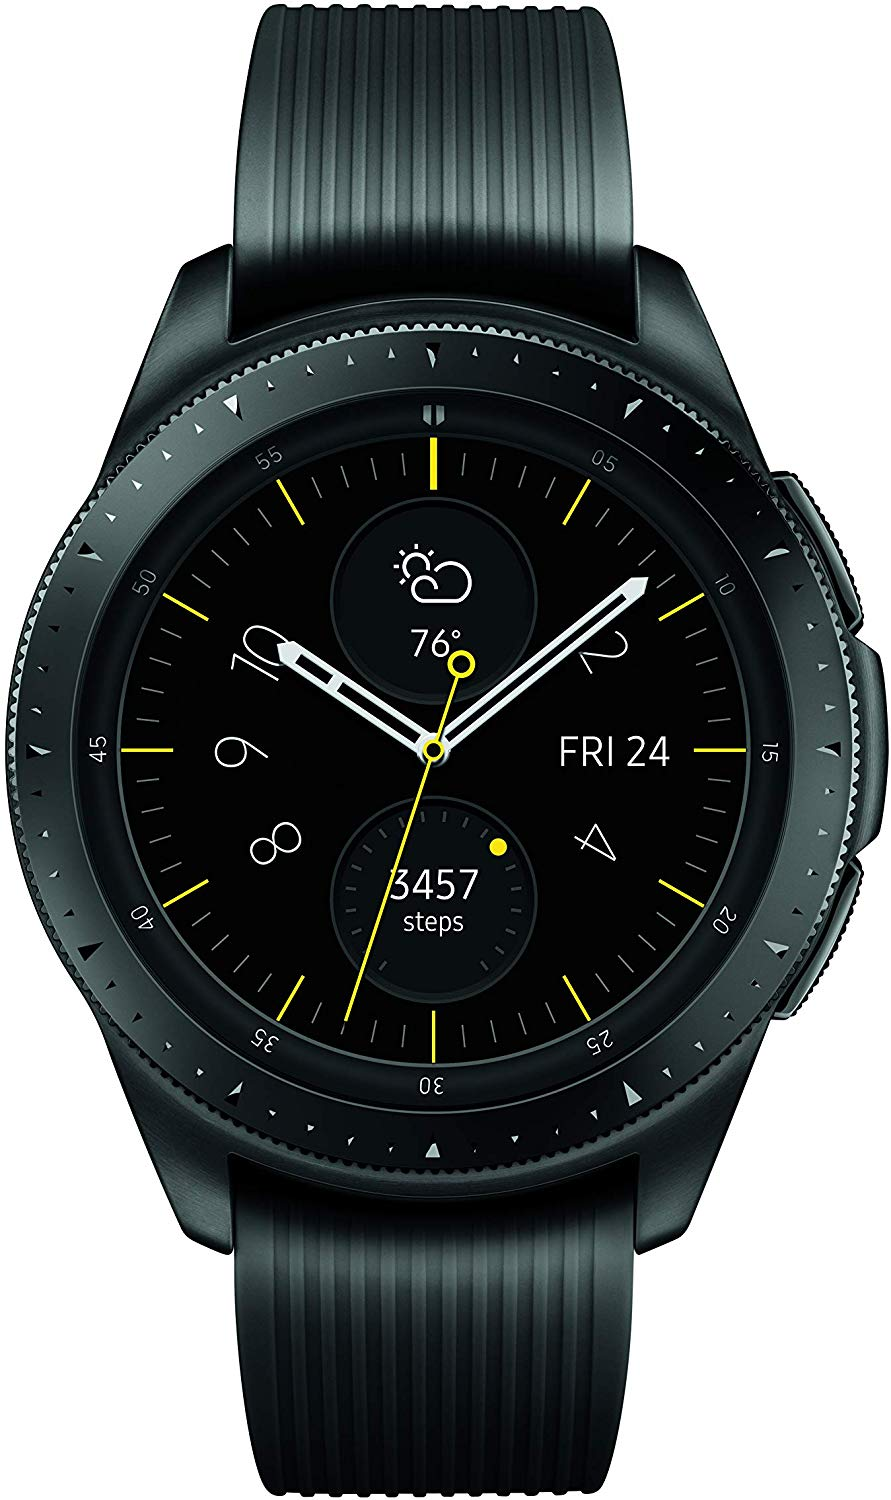 Samsung Galaxy Watch (42mm) Full Specs and prices